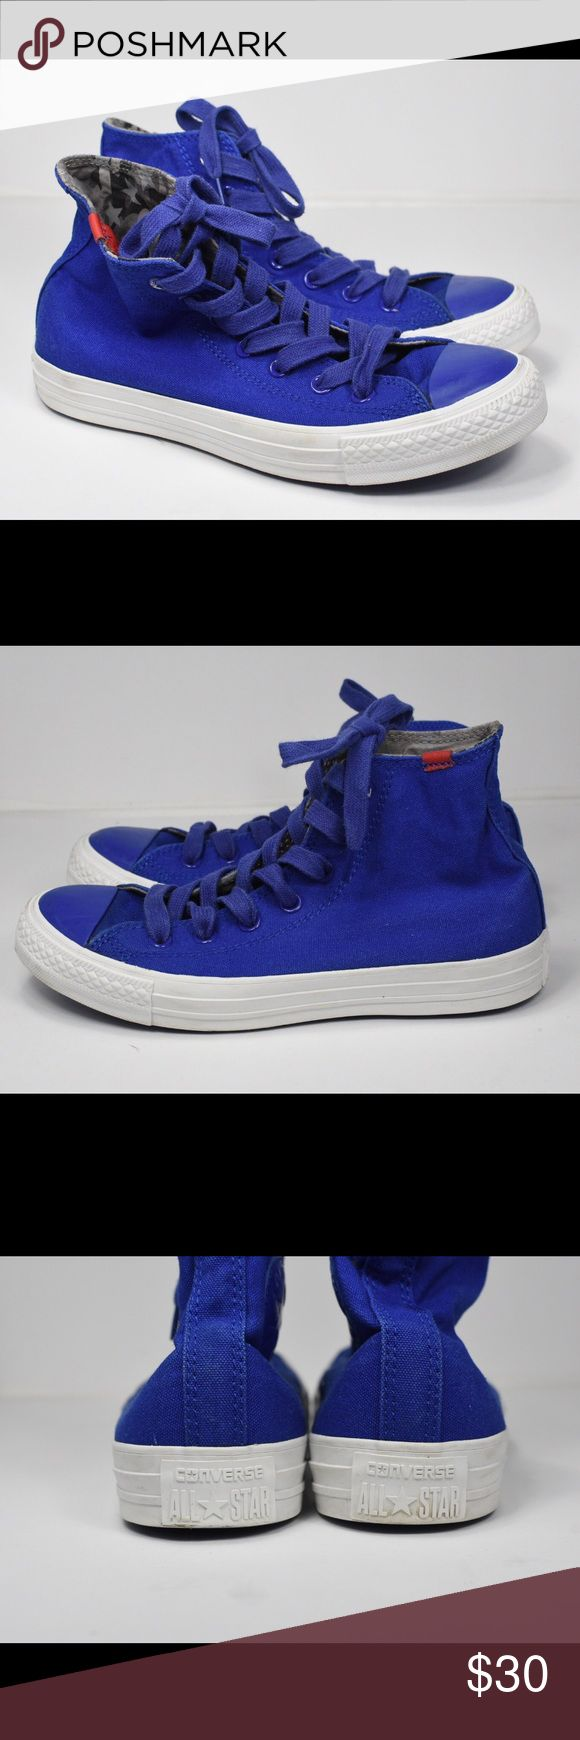 Converse All Star Hi Wiz Khalifa Blue Size W 8 M 6 Excellent Condition Converse Shoes Sneakers